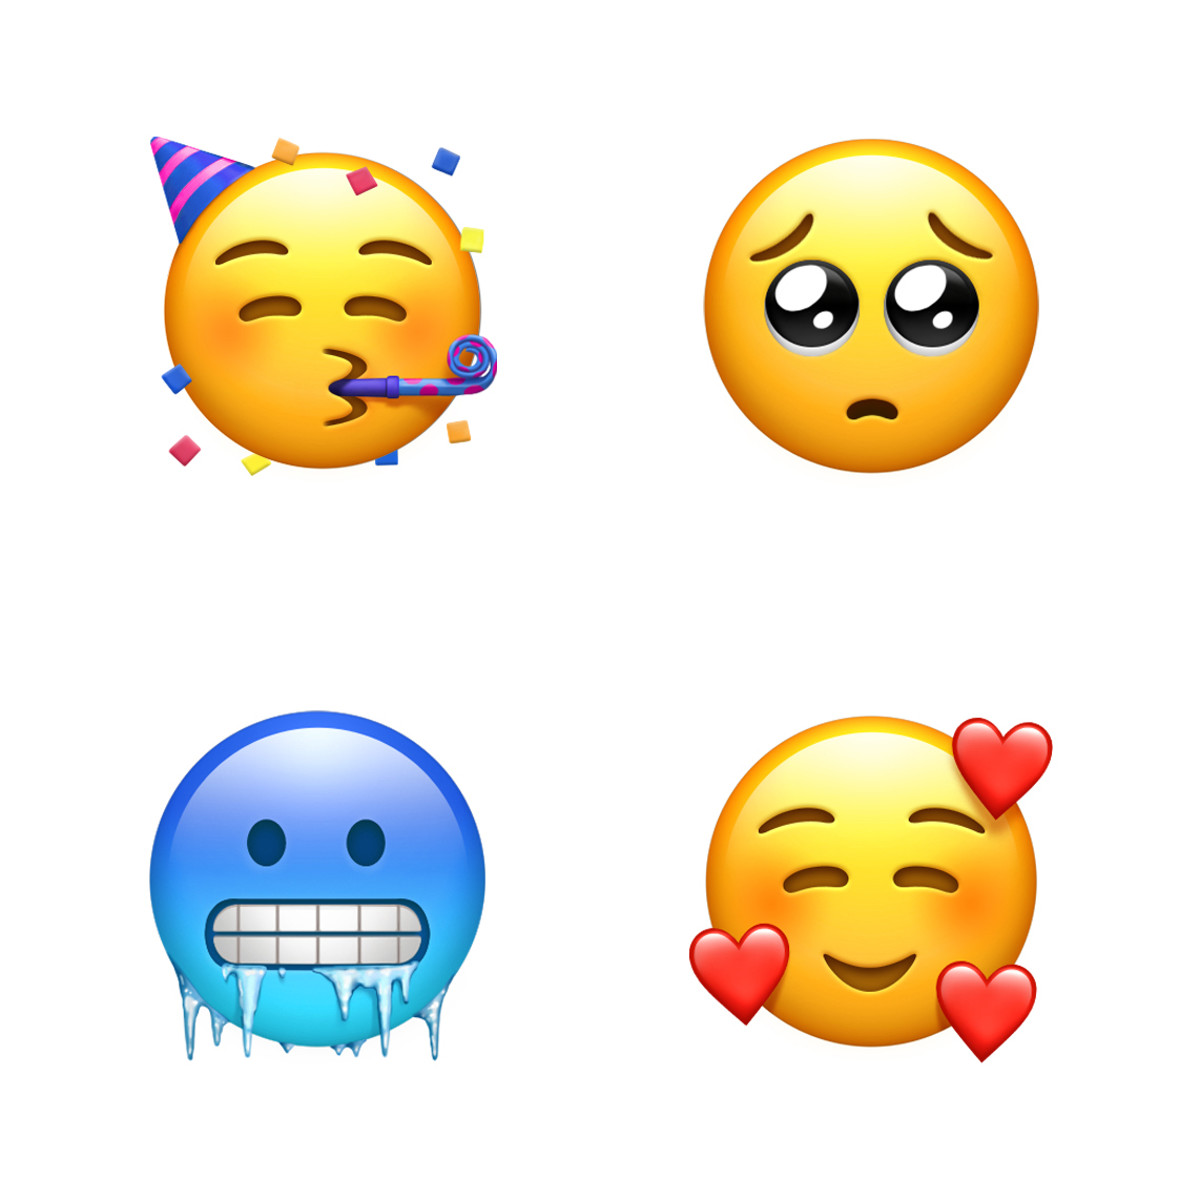 """Apple Celebrates """"World Emoji Day"""" With New Emojis Coming This Fall"""